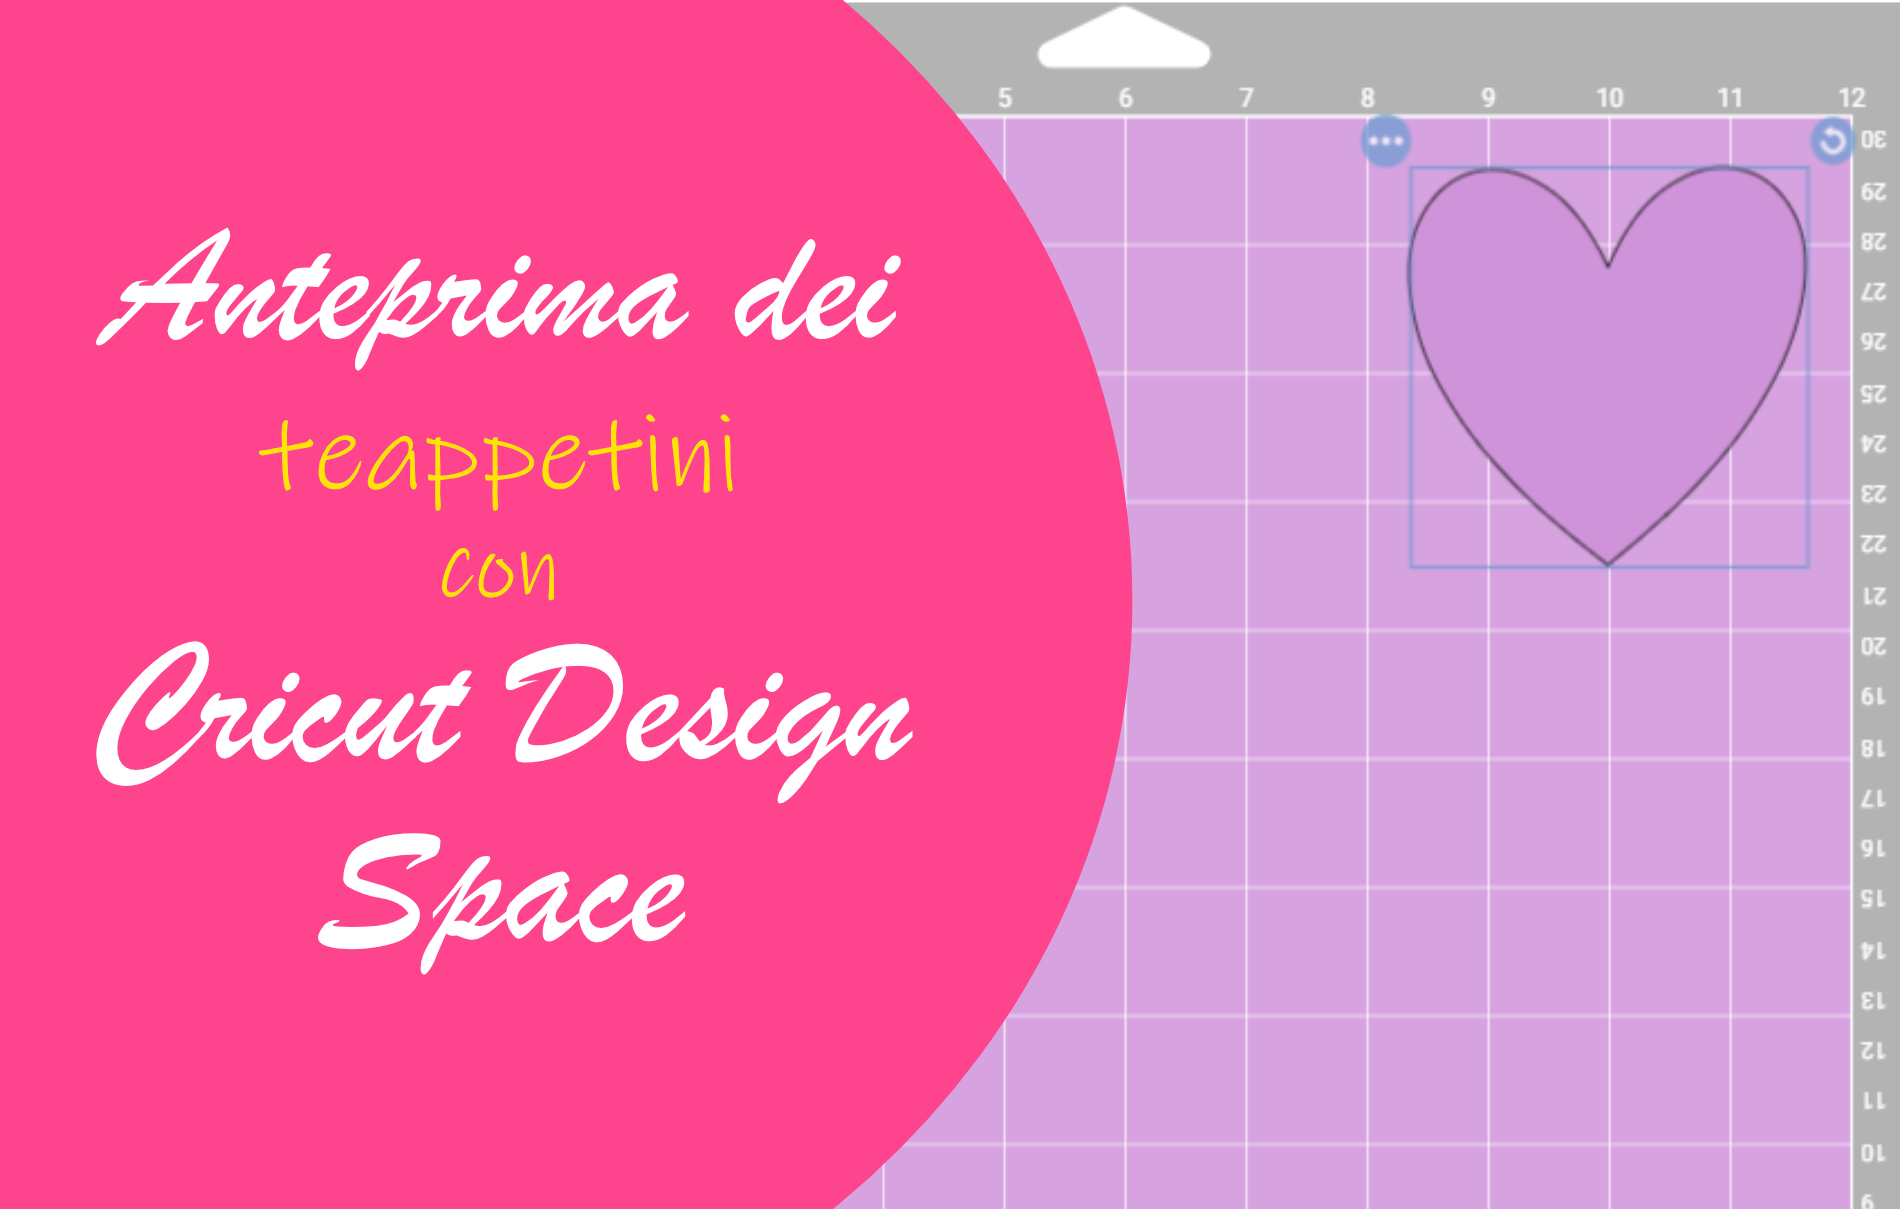 Anteprima tappetini Cricut Design Space